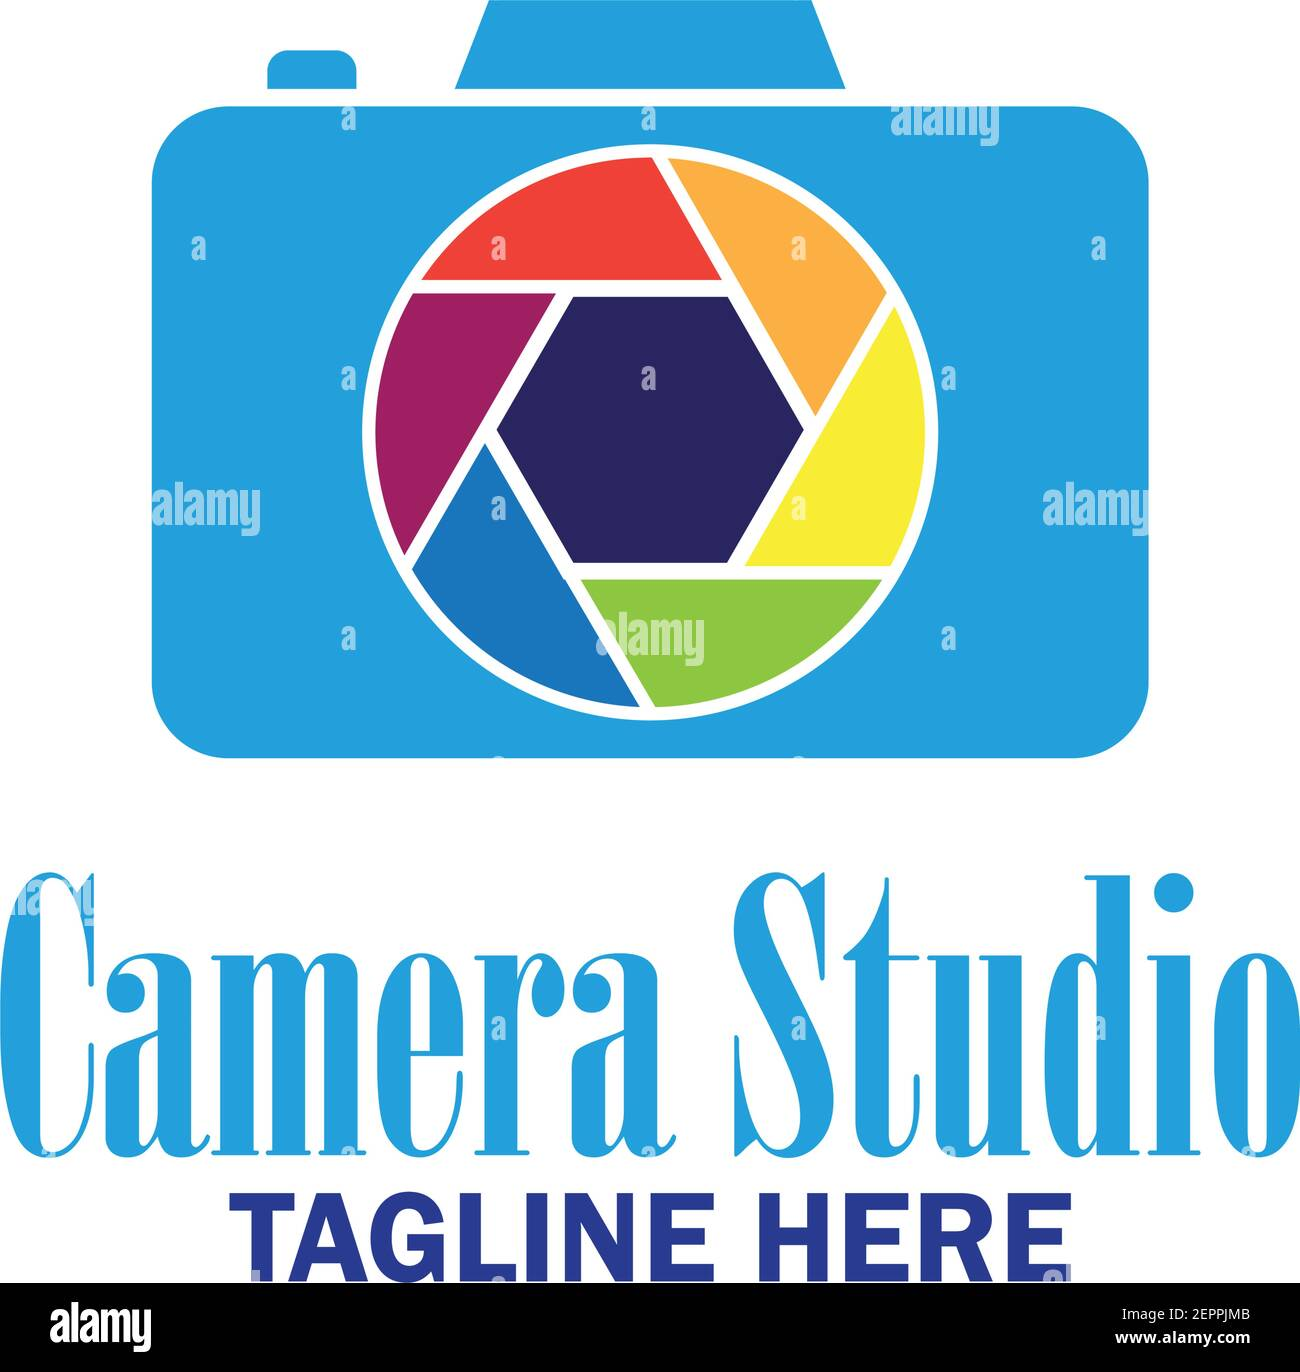 camera studio, shutter, camera store icon with text space for your slogan tagline, vector illustration Stock Vector